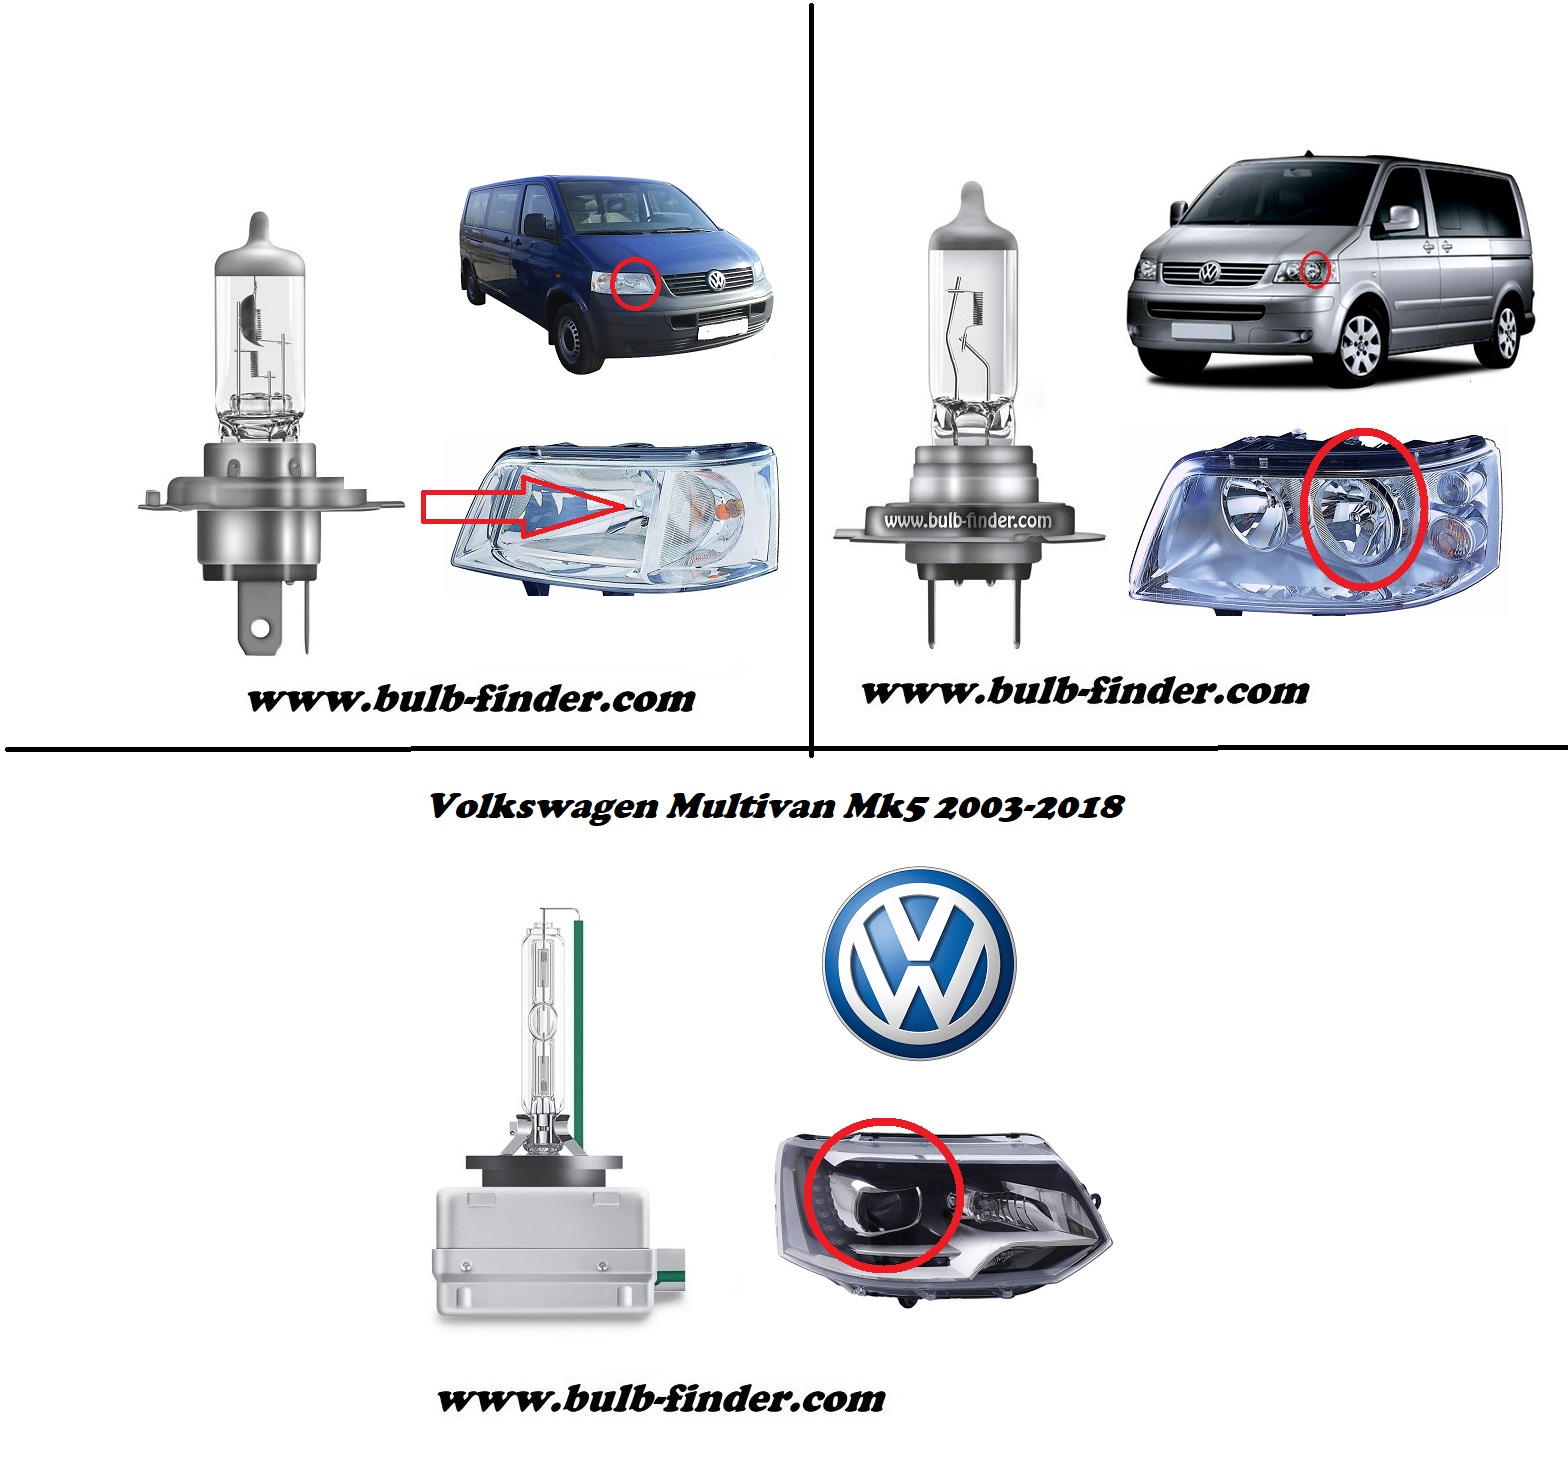 VW Multivan 5 model bulb for LOW BEAM HEADLIGHT specification